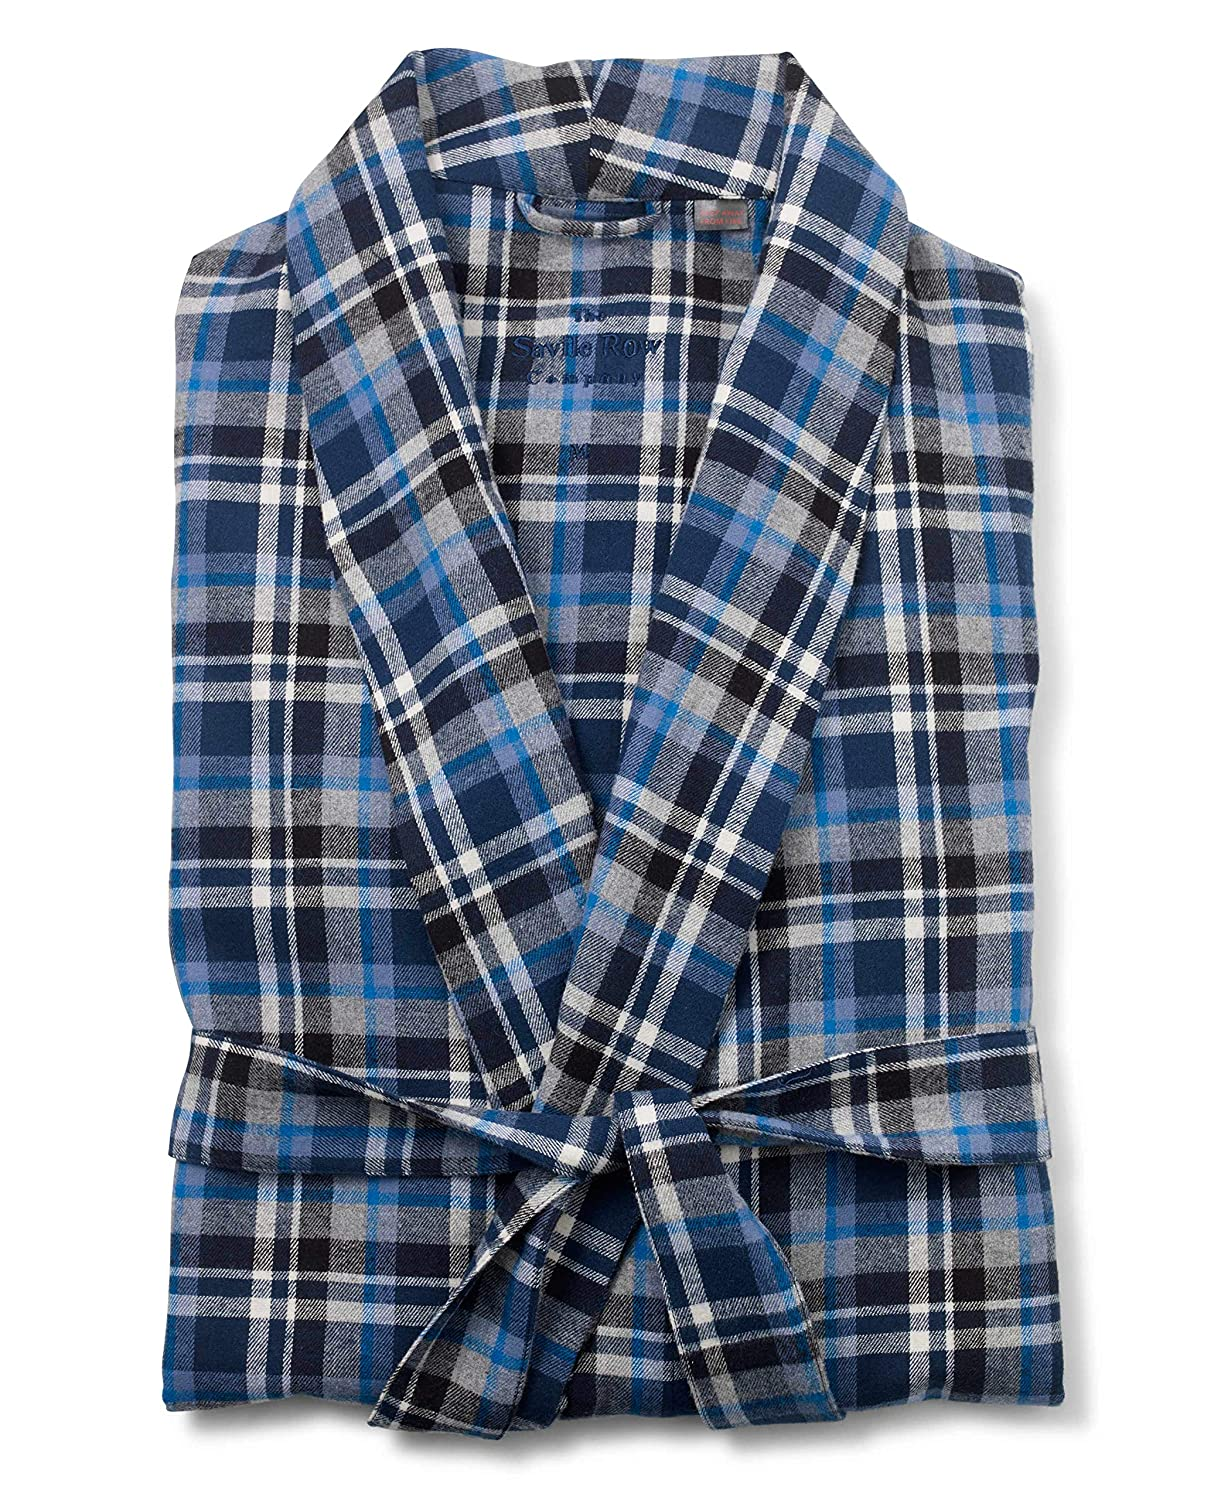 Savile Row Company Men's Navy Blue White Brushed Cotton Check Dressing Gown The Savile Row Company London